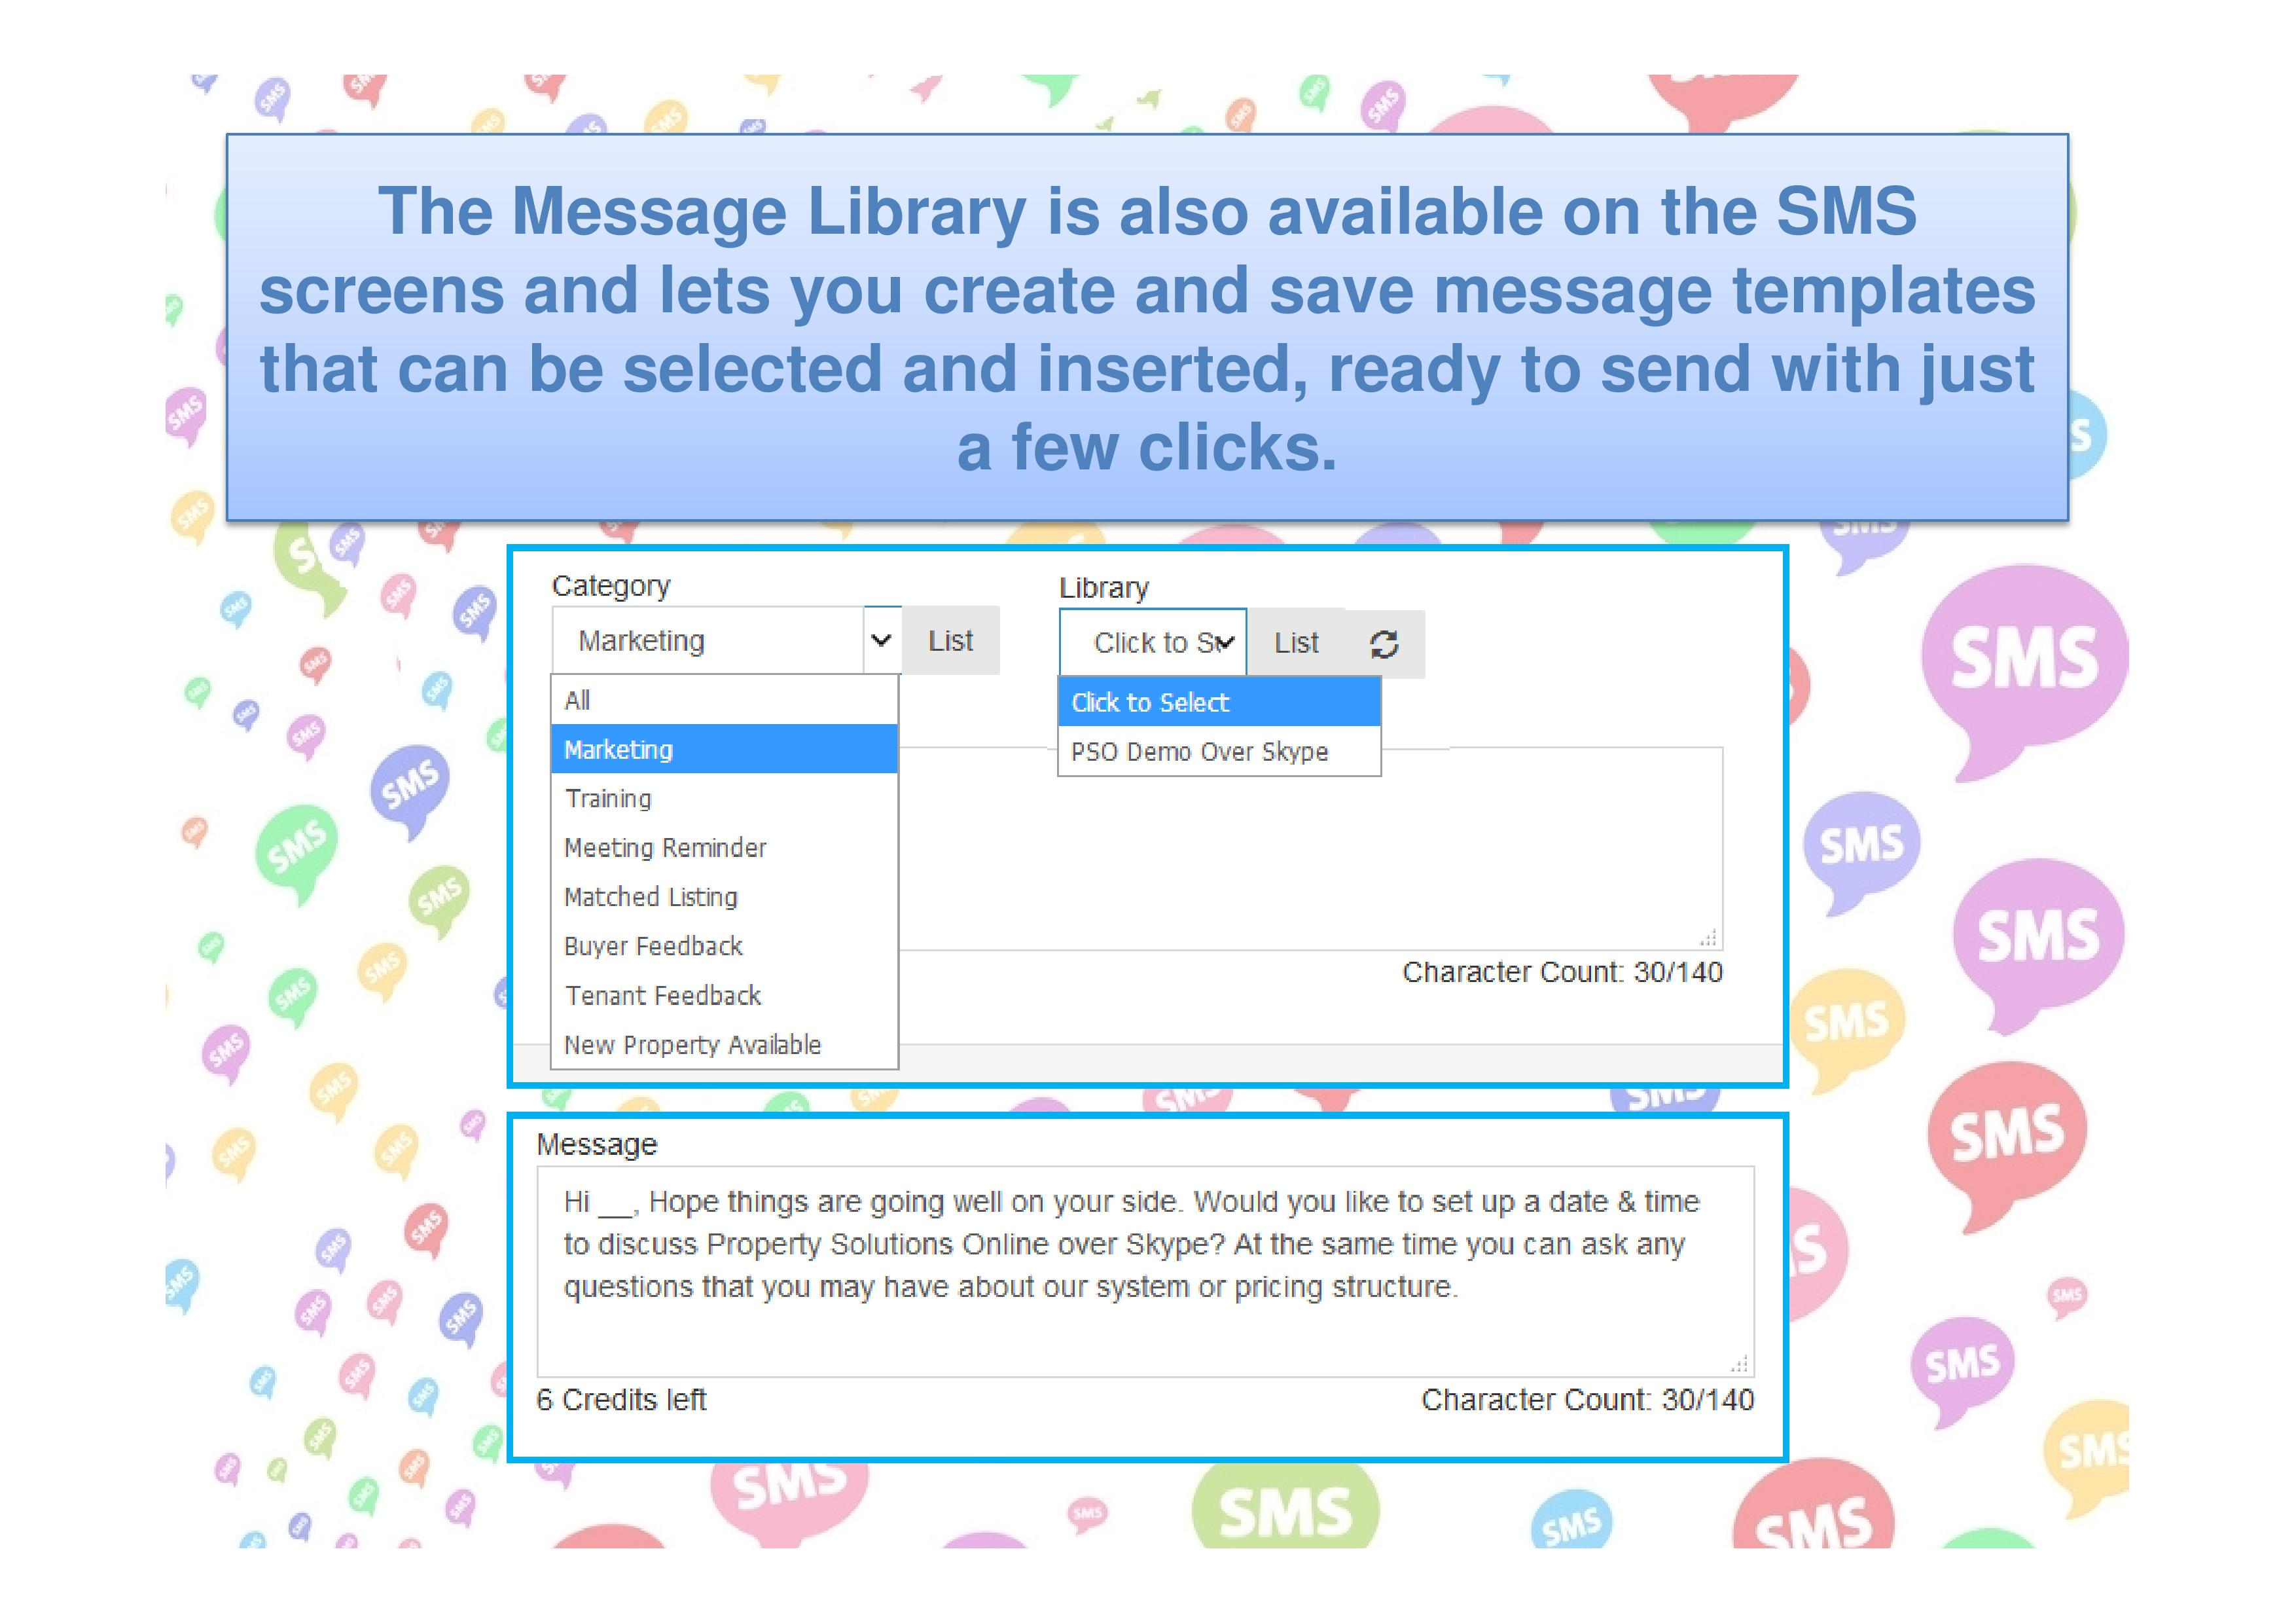 The Message Library lets you create and save message templates.